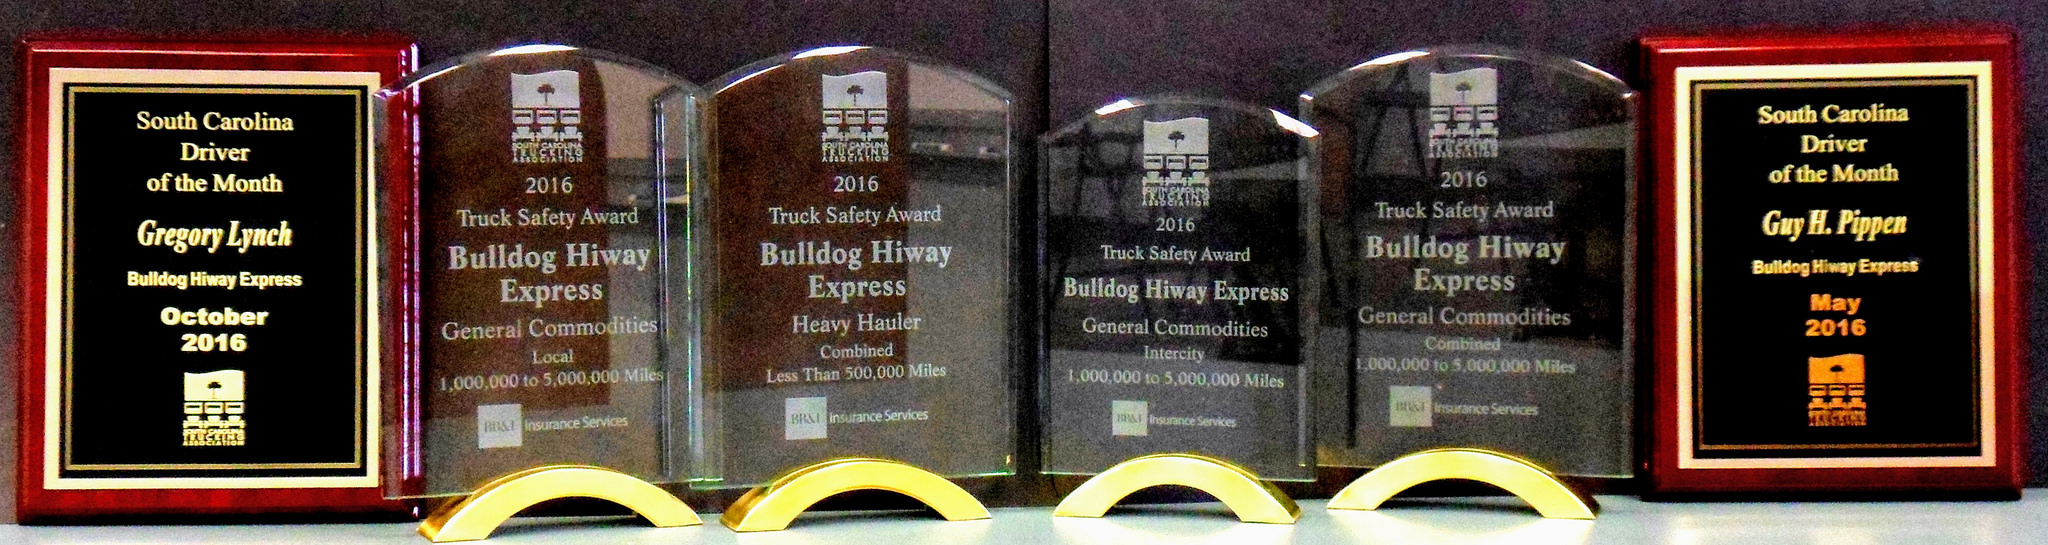 Bulldog Hiway Express displays its top safety awards in four categories and two driver of the month awards from the South Carolina Trucking Association (SCTA).